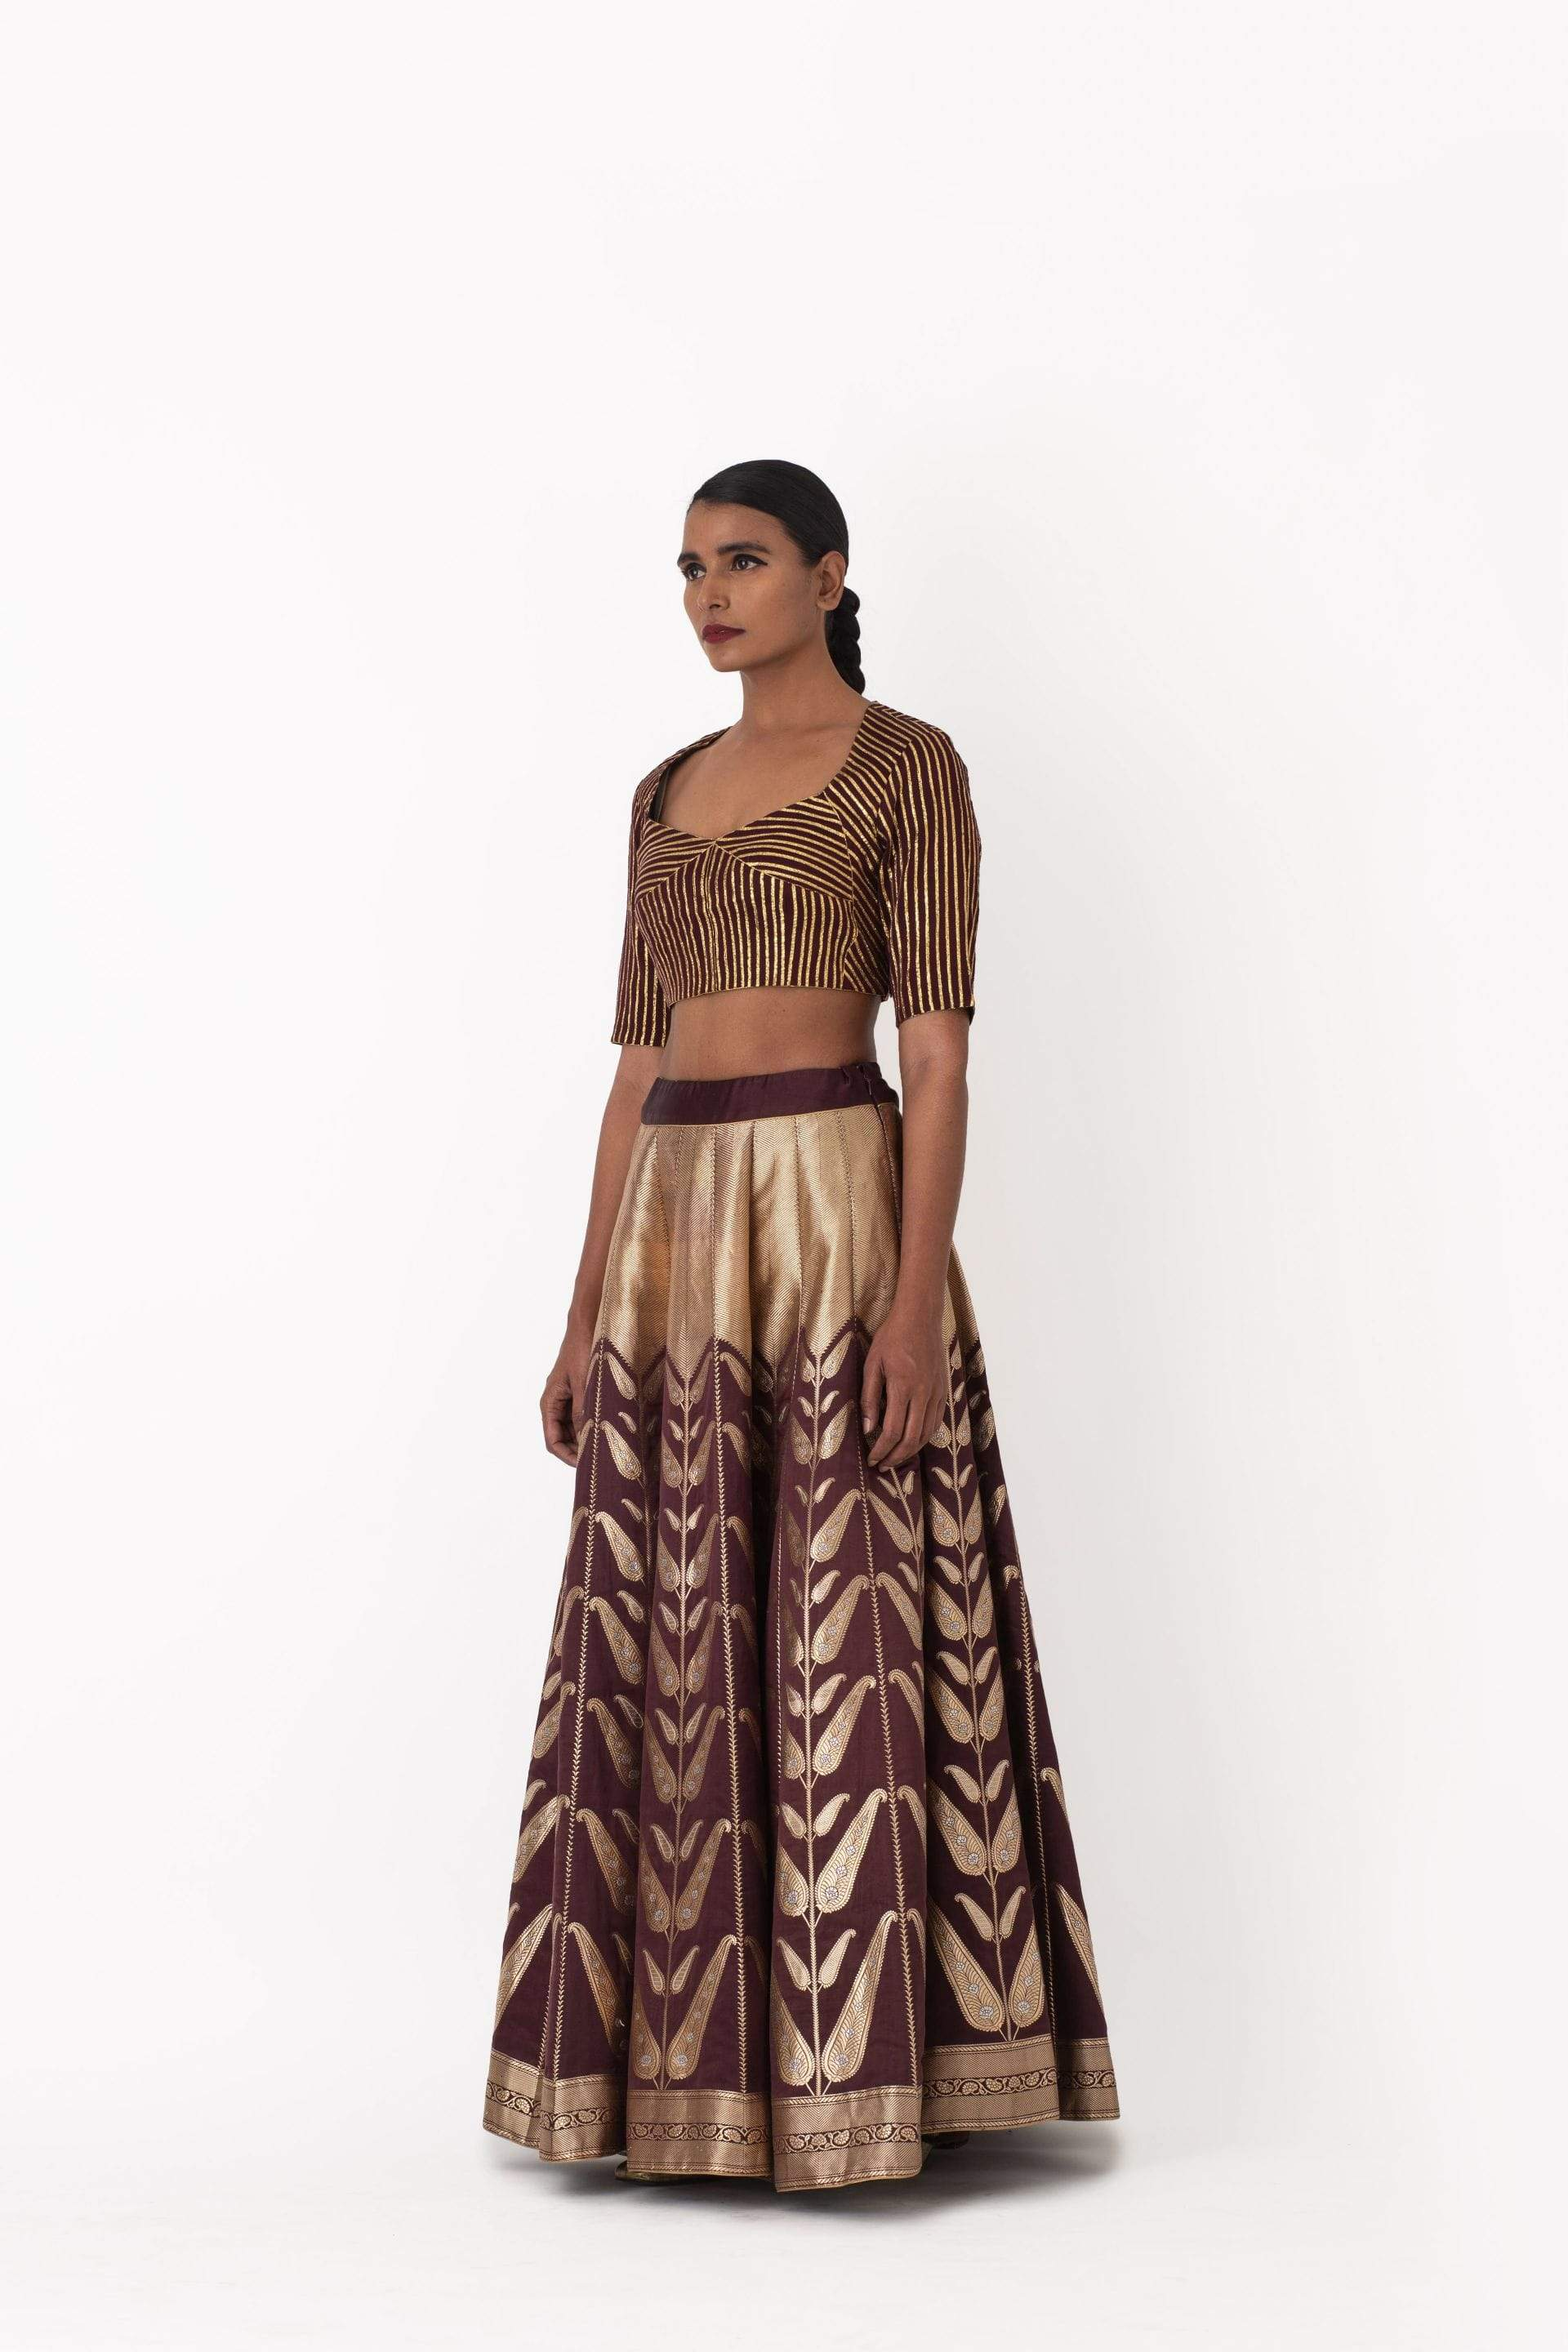 Raw Mango Light Lehengas Madani & Ruhi lehenga set